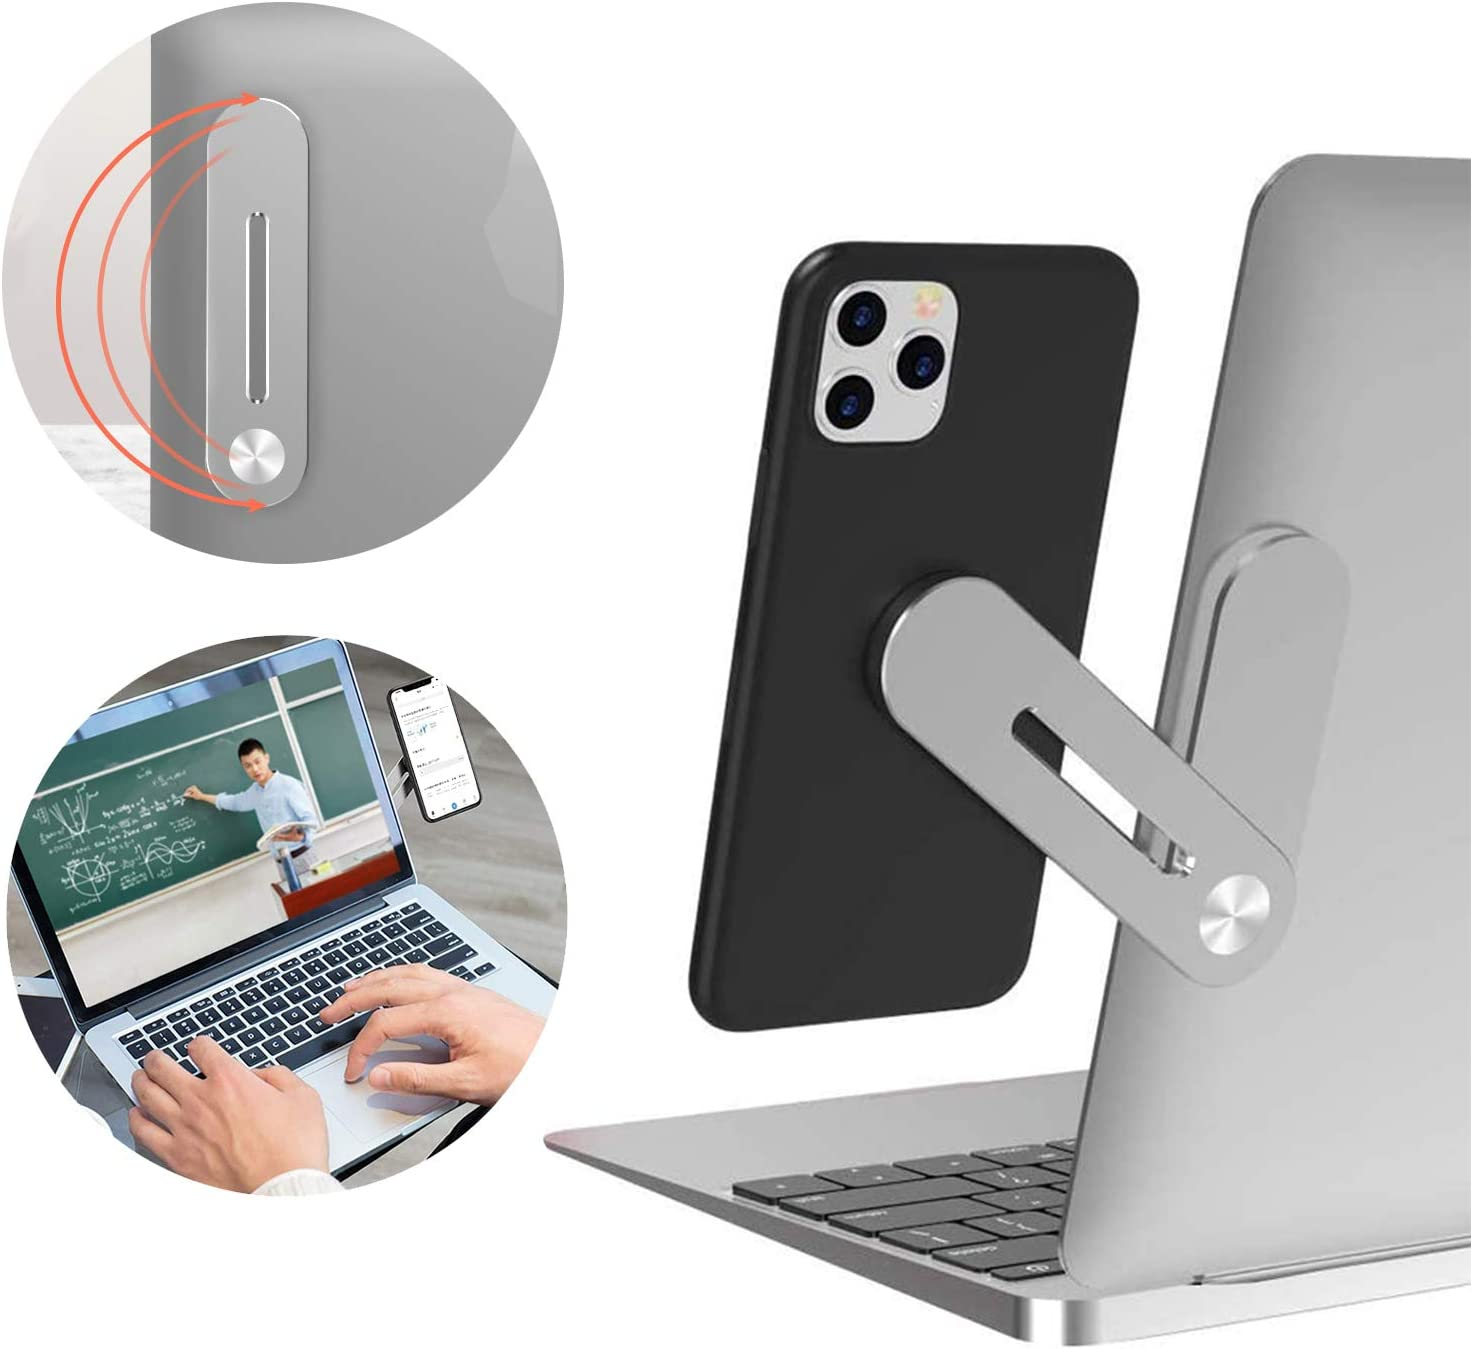 Eamplest Side Mount Clip on Monitor, Magnetic Laptop Stand with Phone Holder Computer Expansion Bracket for Smartphone Cellphone,Enjoying Dual Screen at The Same Time